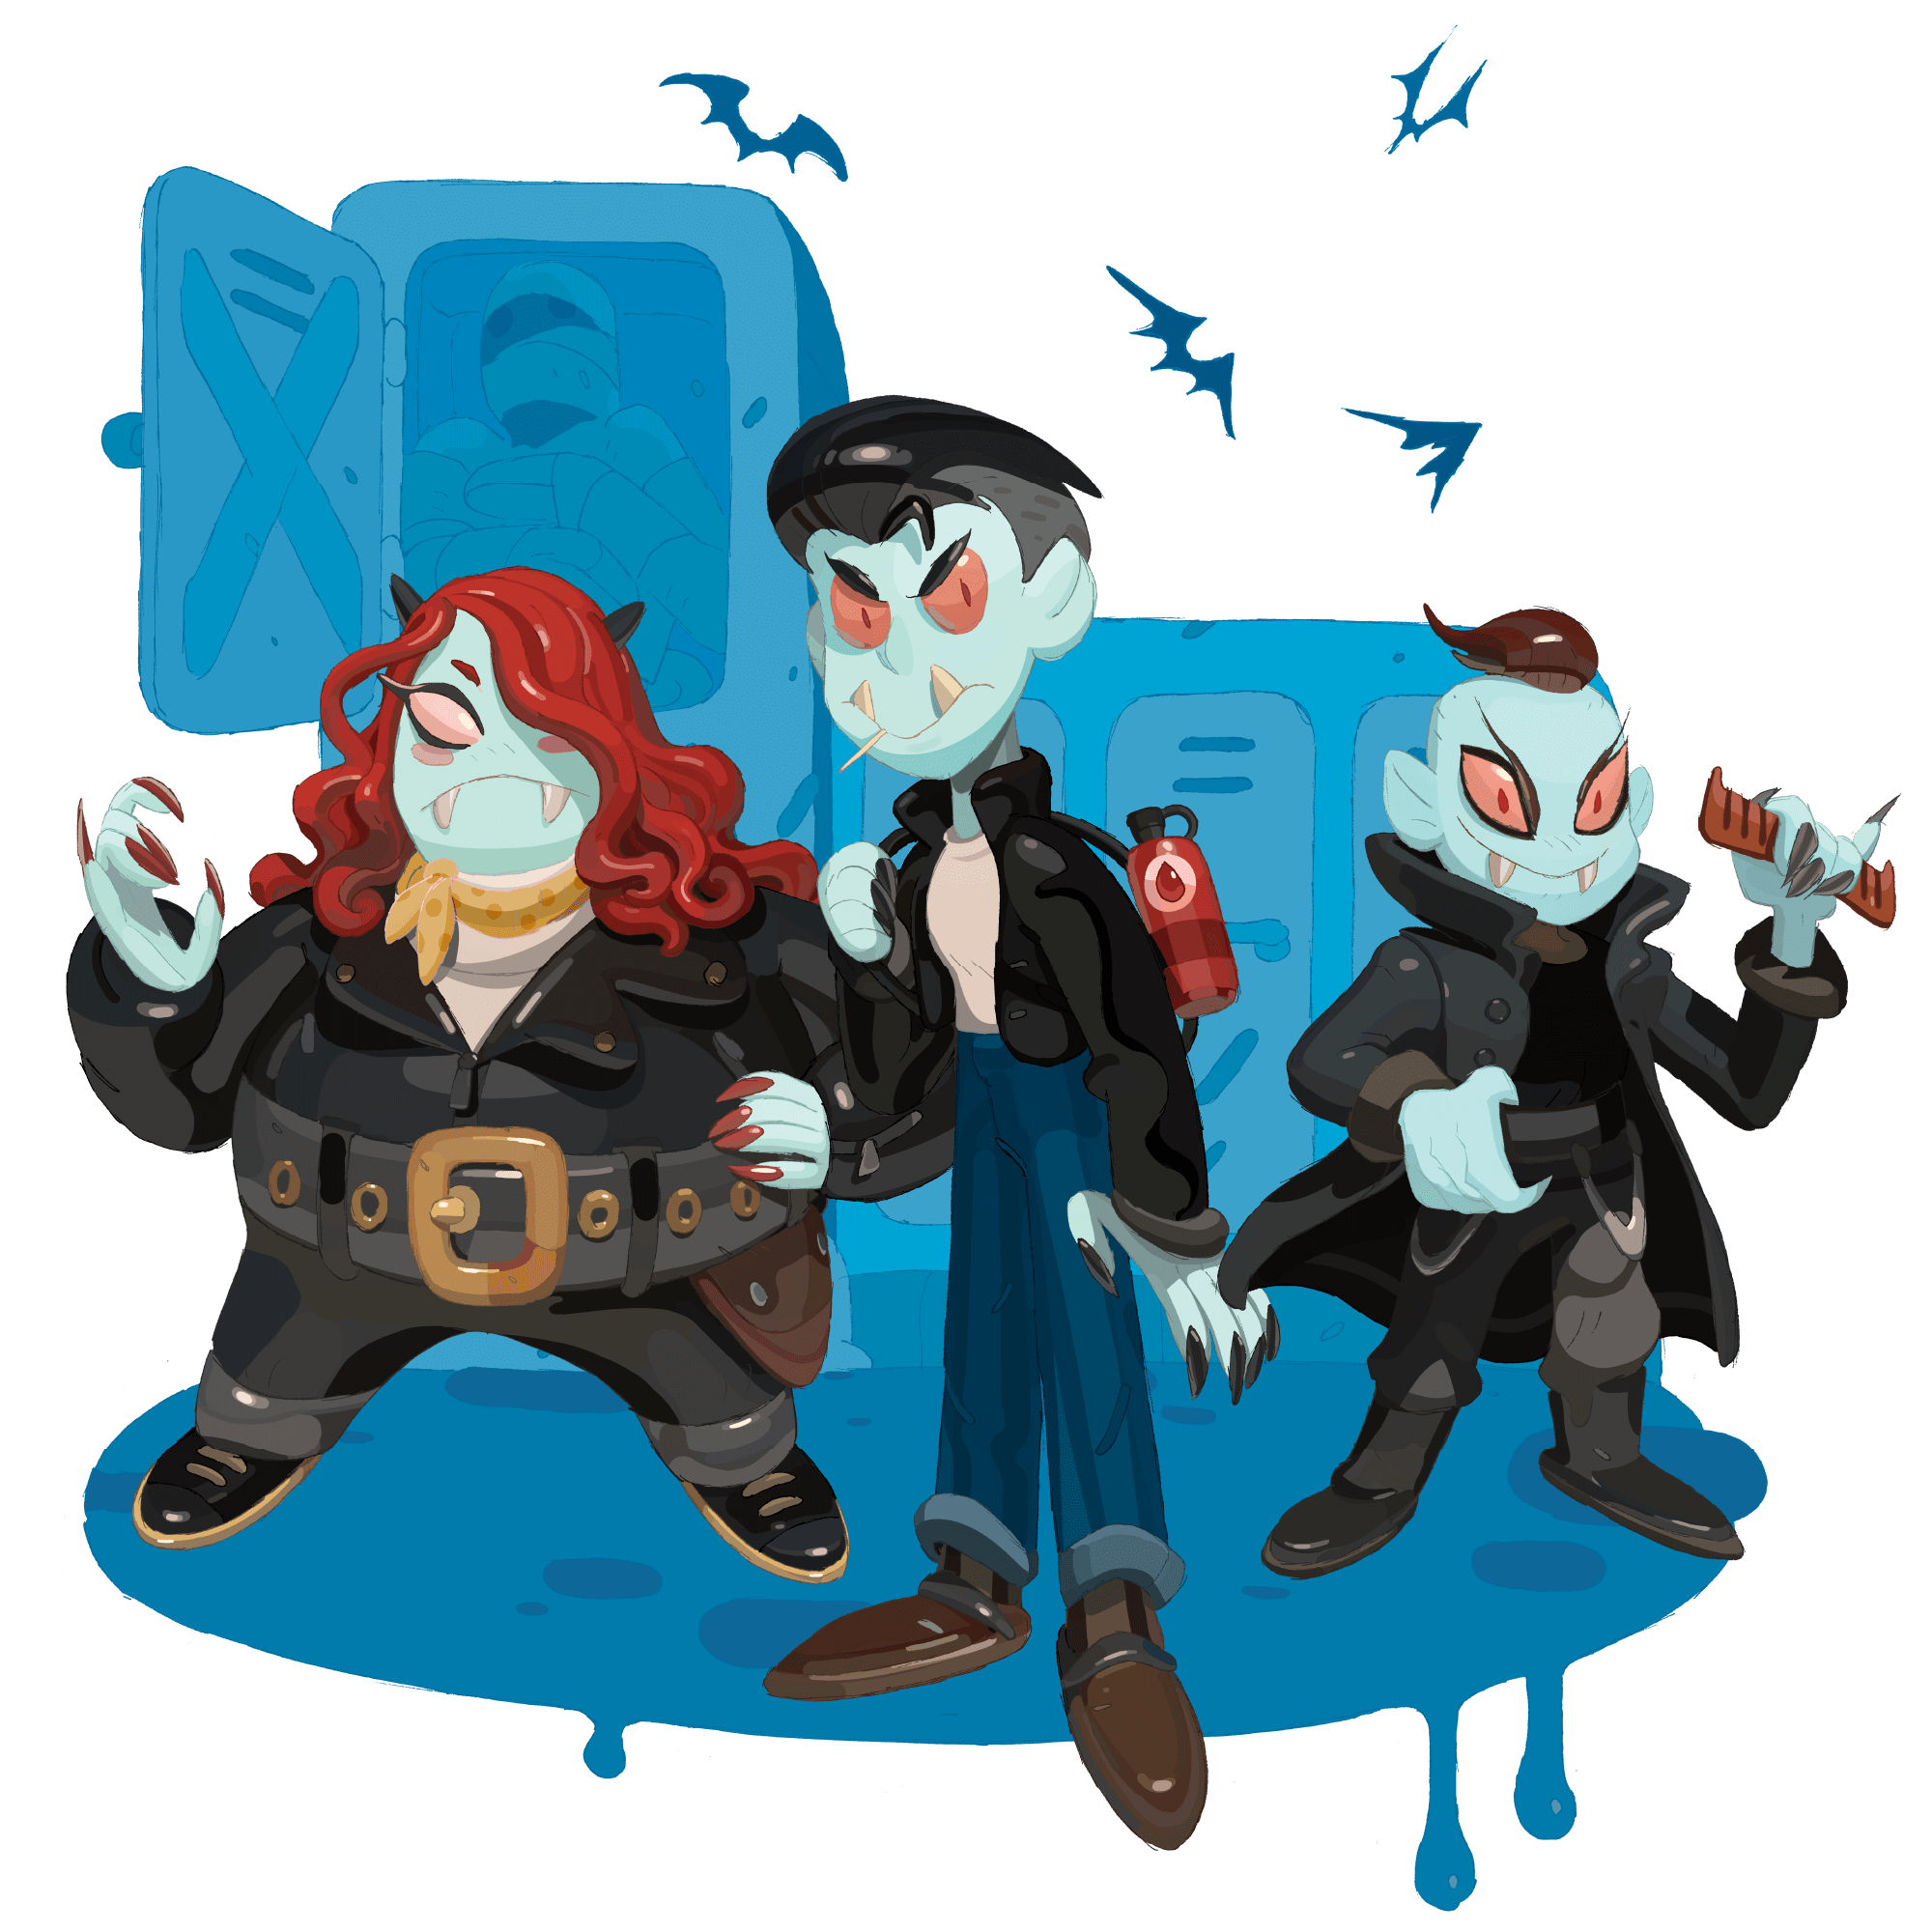 Three stylized vampires standing in front of an abstract school background.